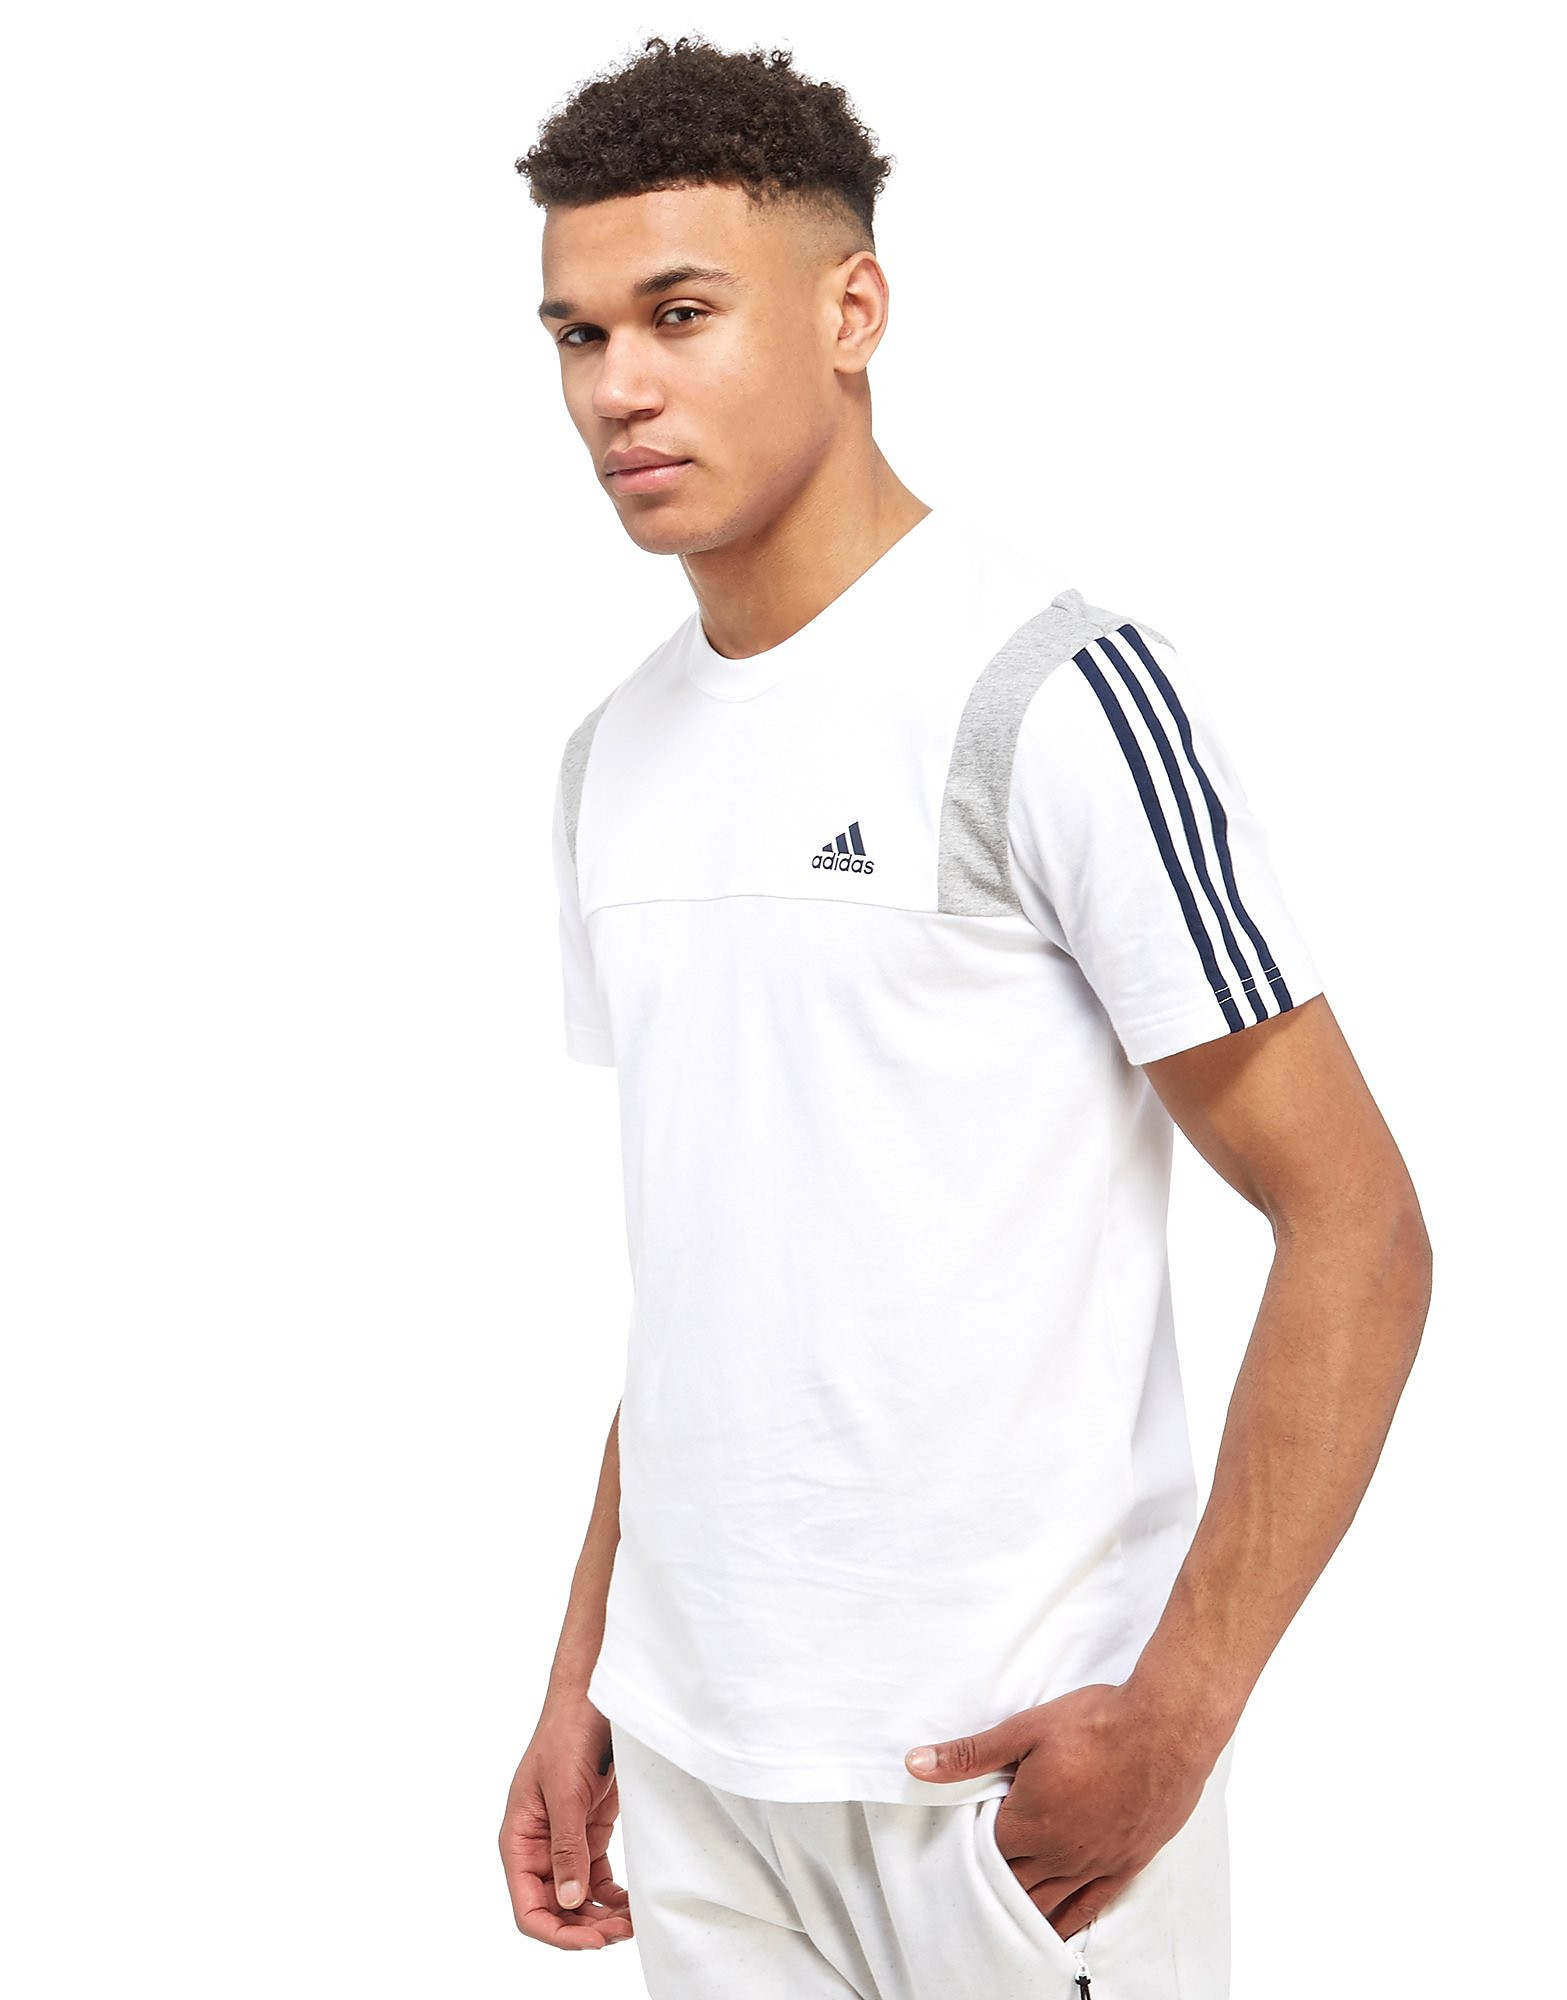 Leather gloves mens jd - Adidas 3 Stripe Essential Colour Block T Shirt Only At Jd White Grey Black